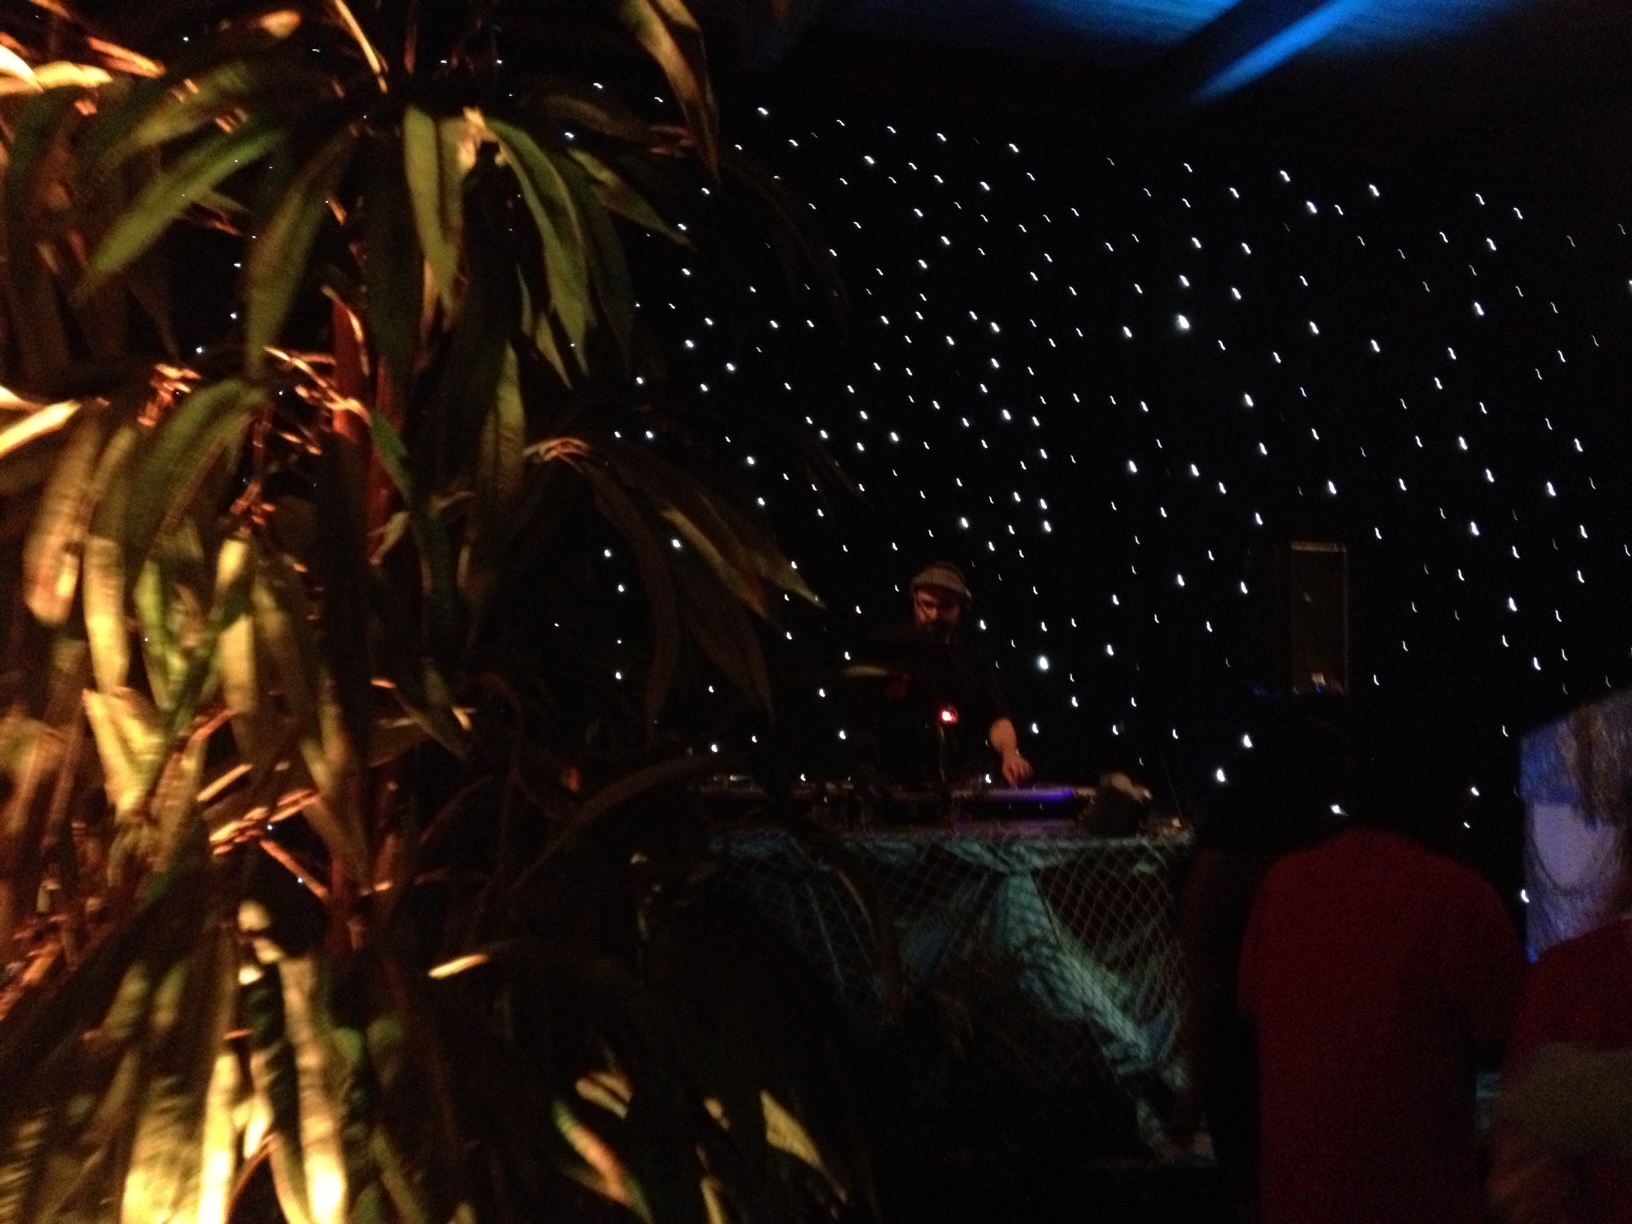 DJ Hammurabi rocking some beats in front of the star scape background!